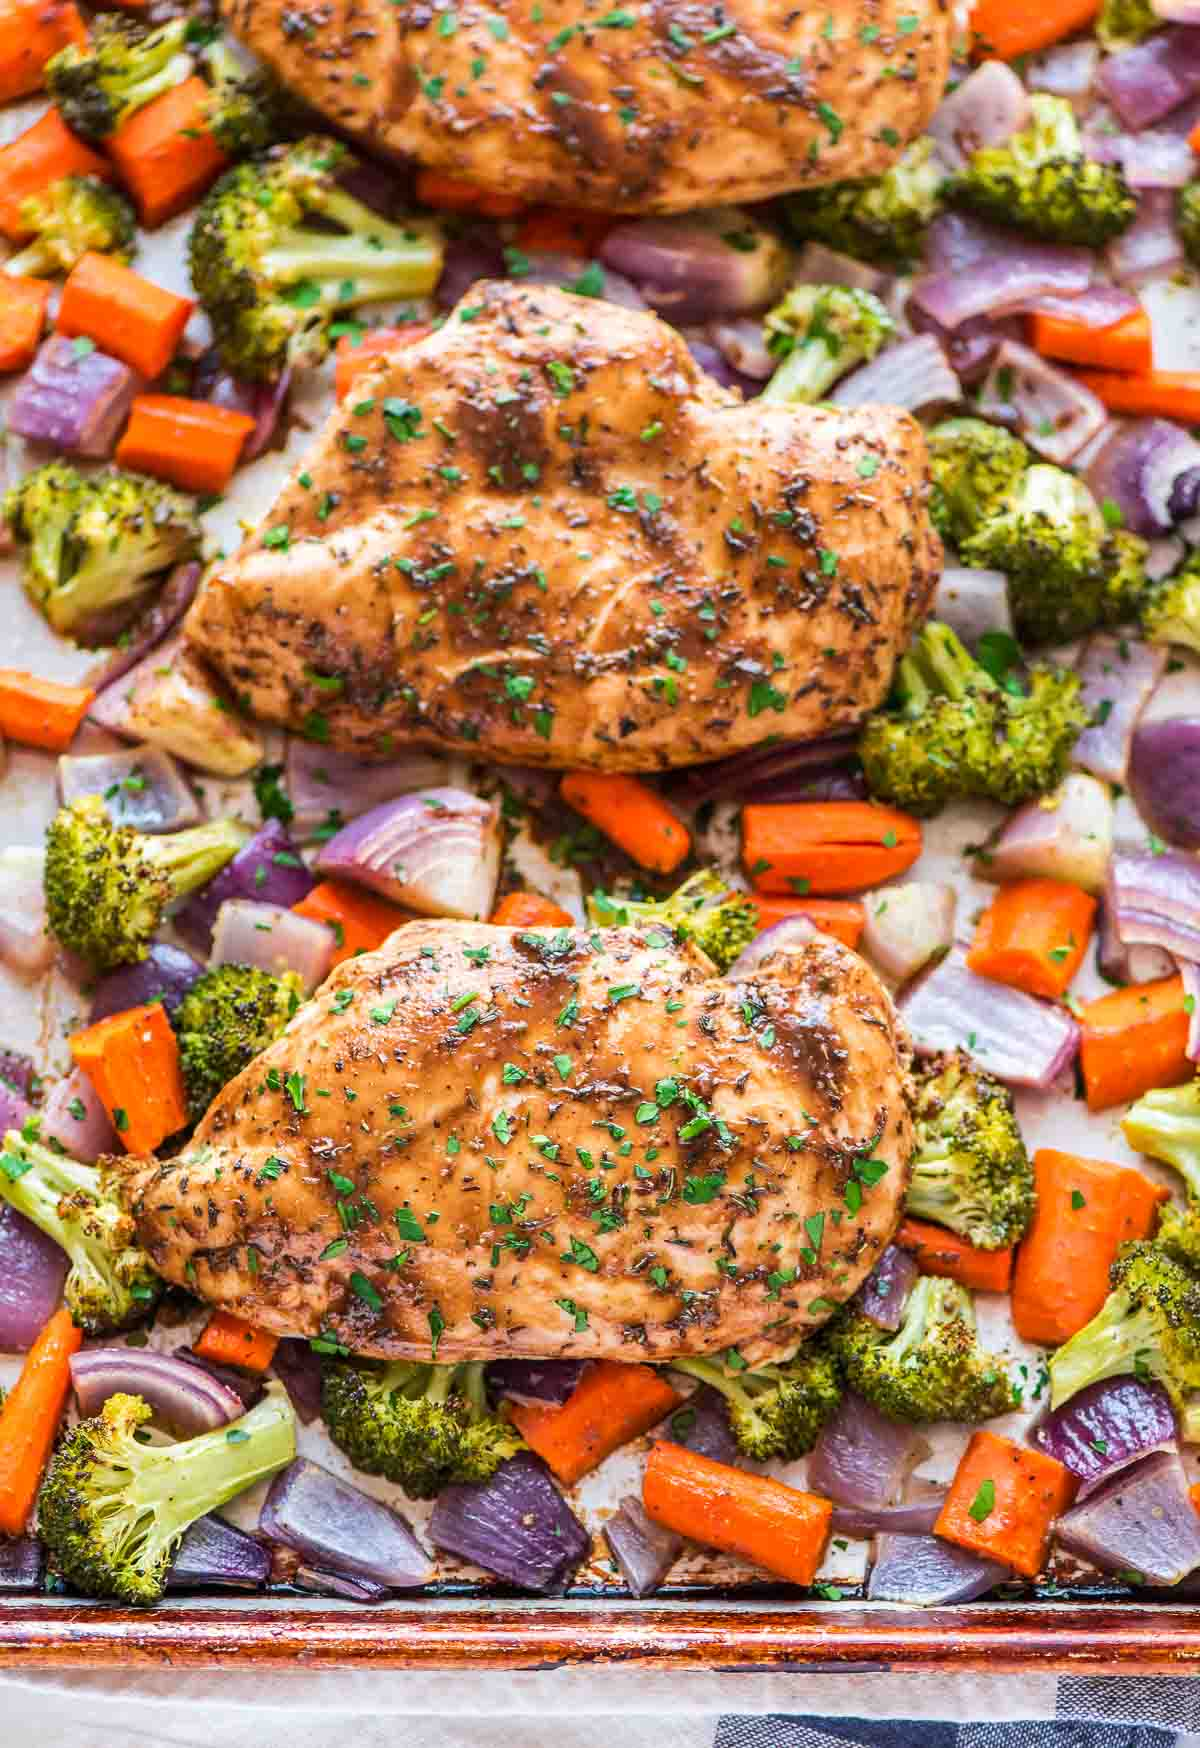 Jan 15,  · Healthy, easy & delicious! One-Pan Balsamic Chicken Veggie Bake is quick to prep and in the oven for less than 20 minutes. A Wholefriendly recipe.5/5(34).